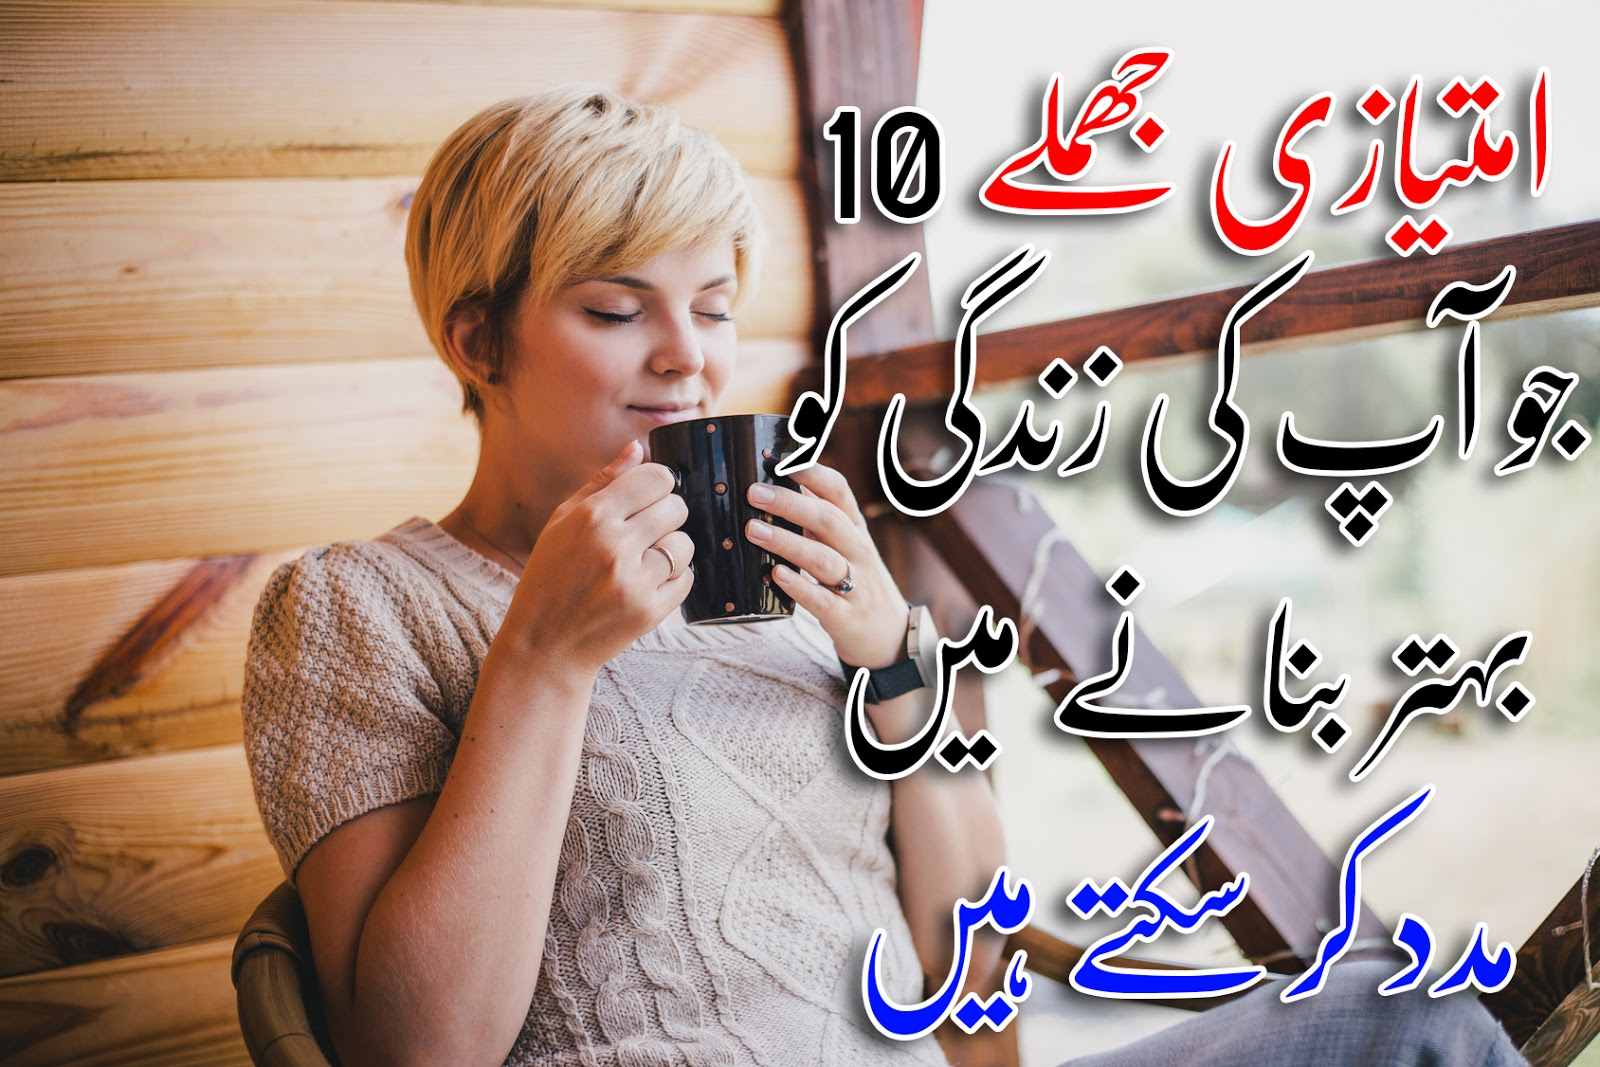 Suhagraat ki hot kahani     (Story of First Nigth) | Intresting News